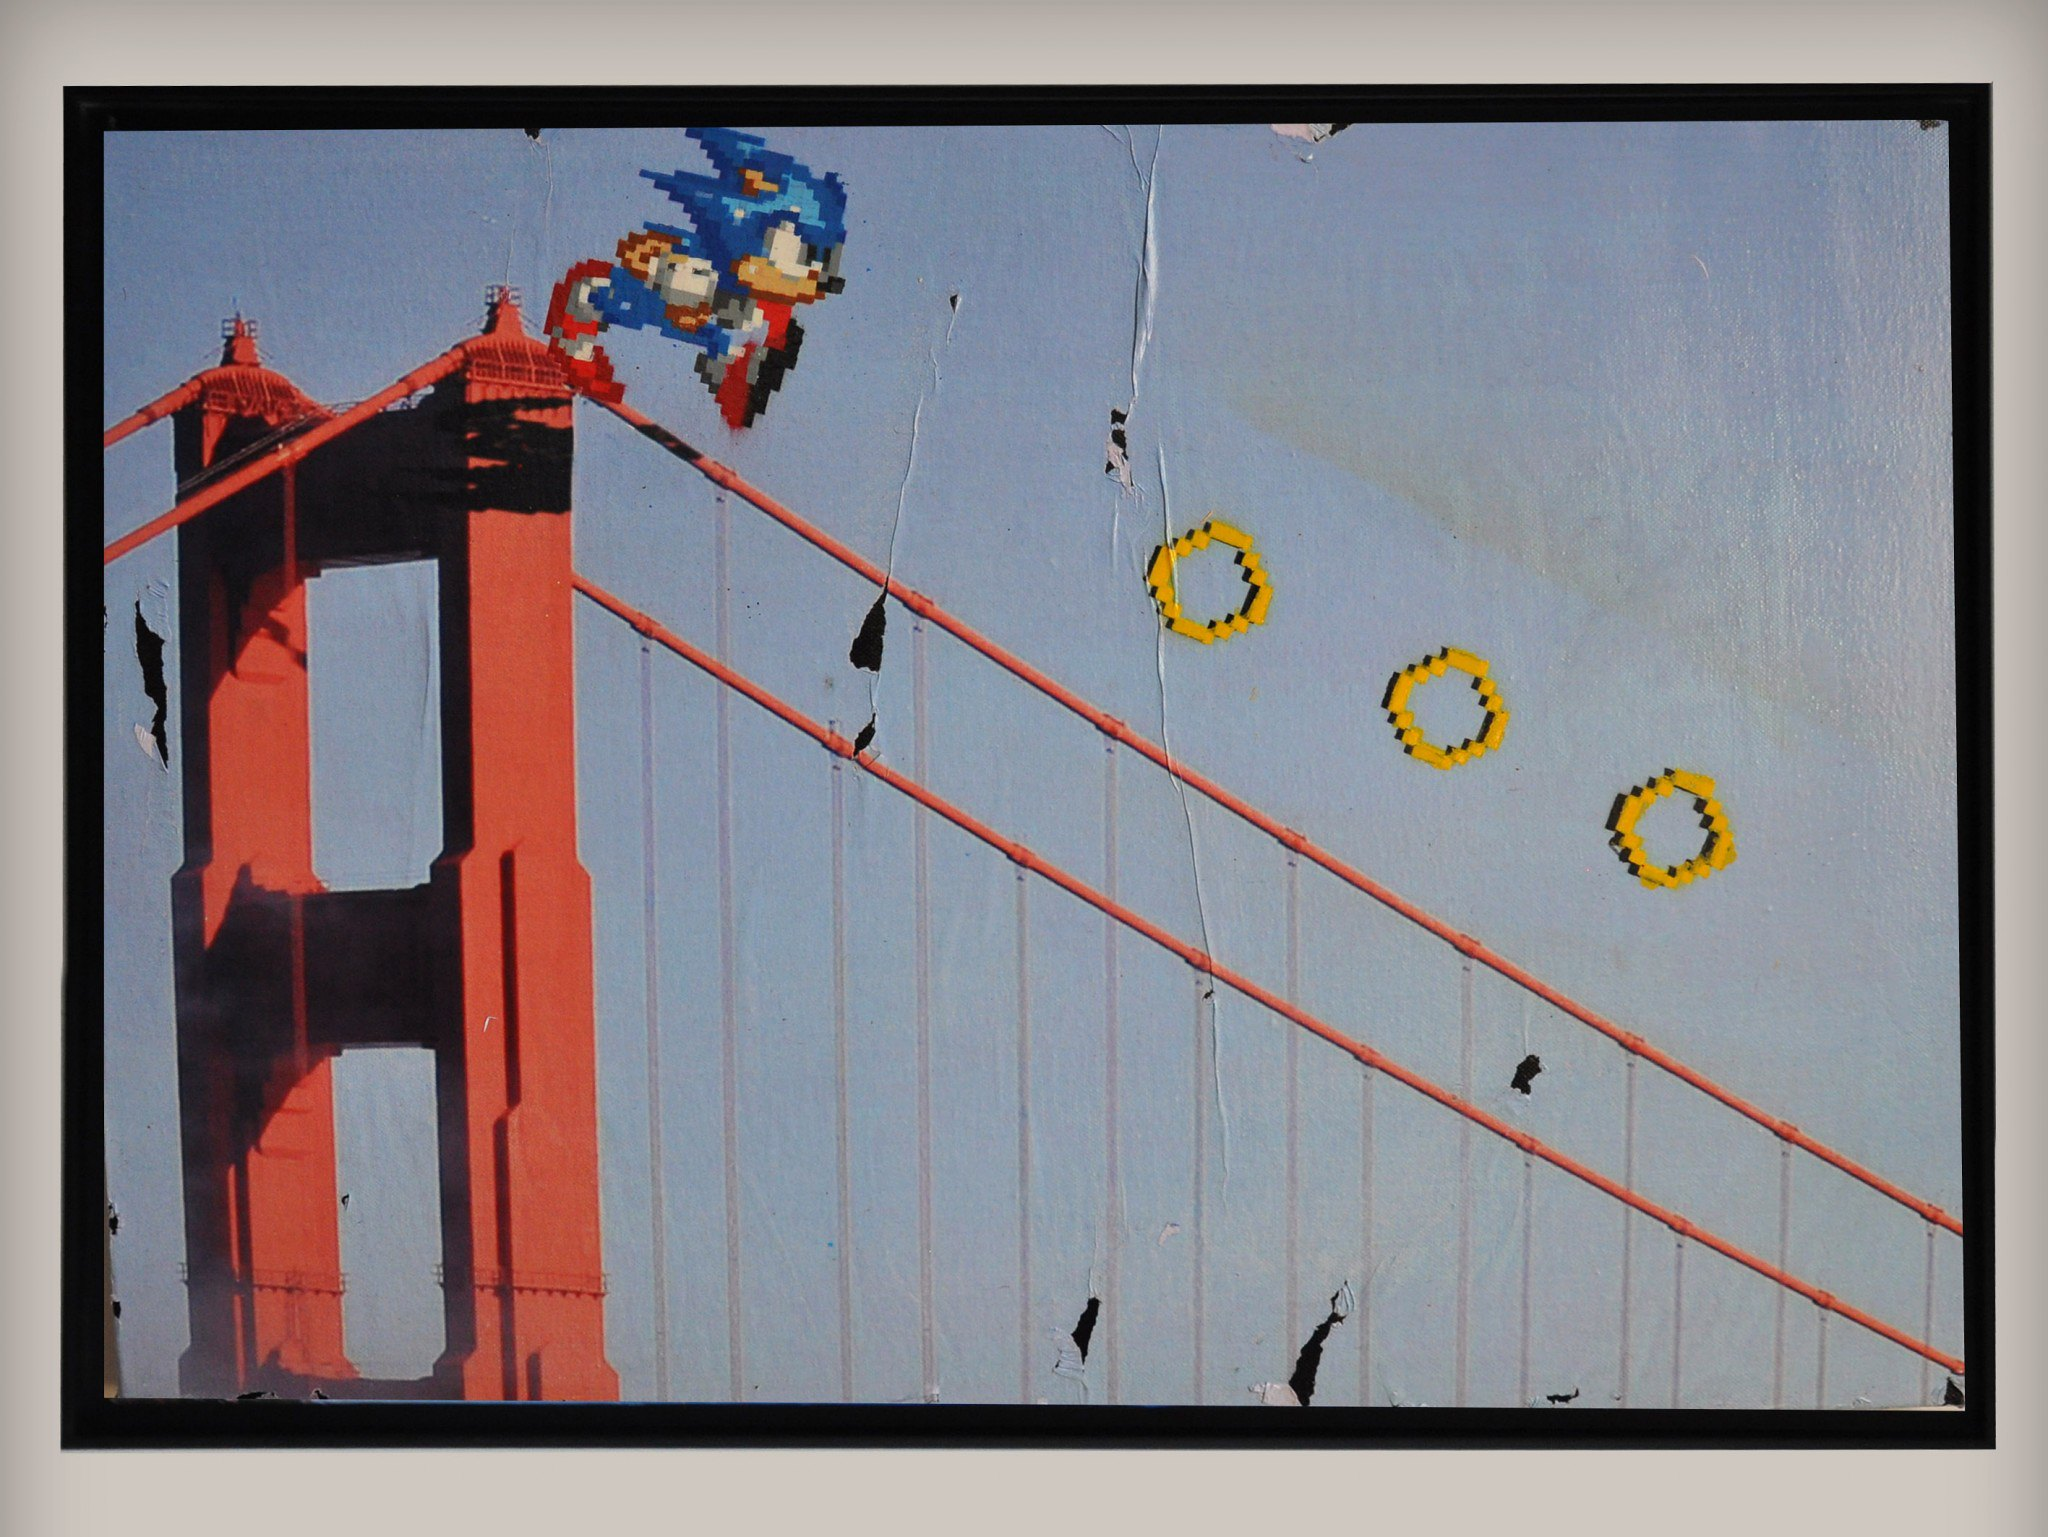 Street art by COMBO Culture Kidnapping - Sonic the Hedgehog